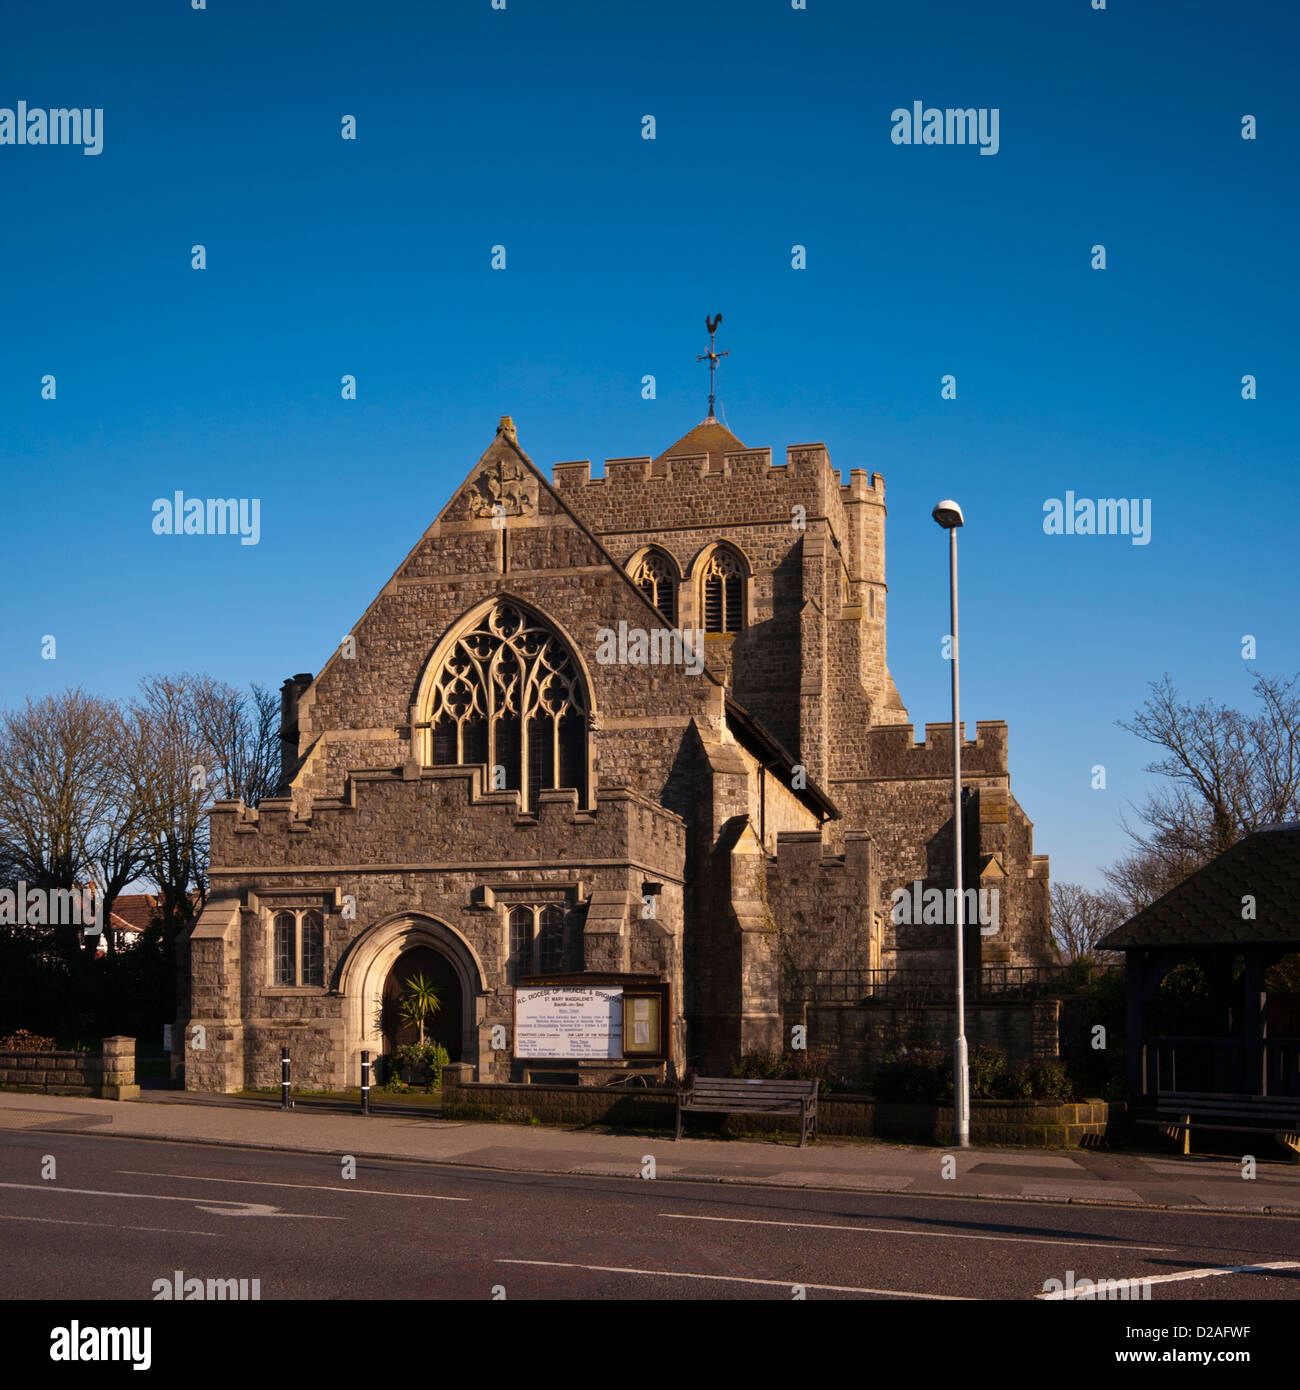 St Mary Magdalene Roman Catholic Church Sea Road Bexhill On Sea East Sussex UK - Stock Image